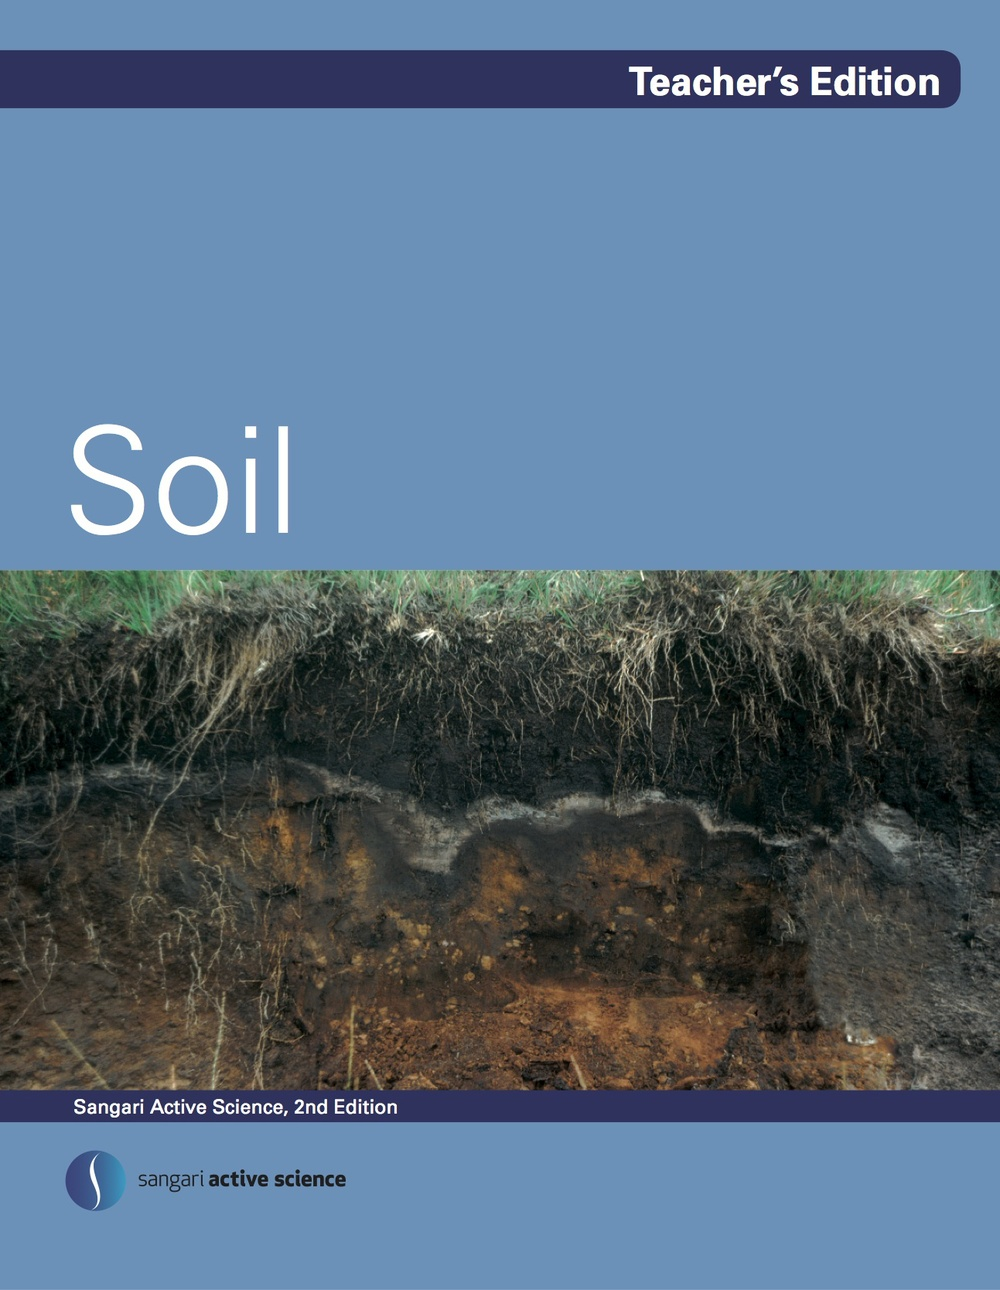 san-soil-te-cover.jpg